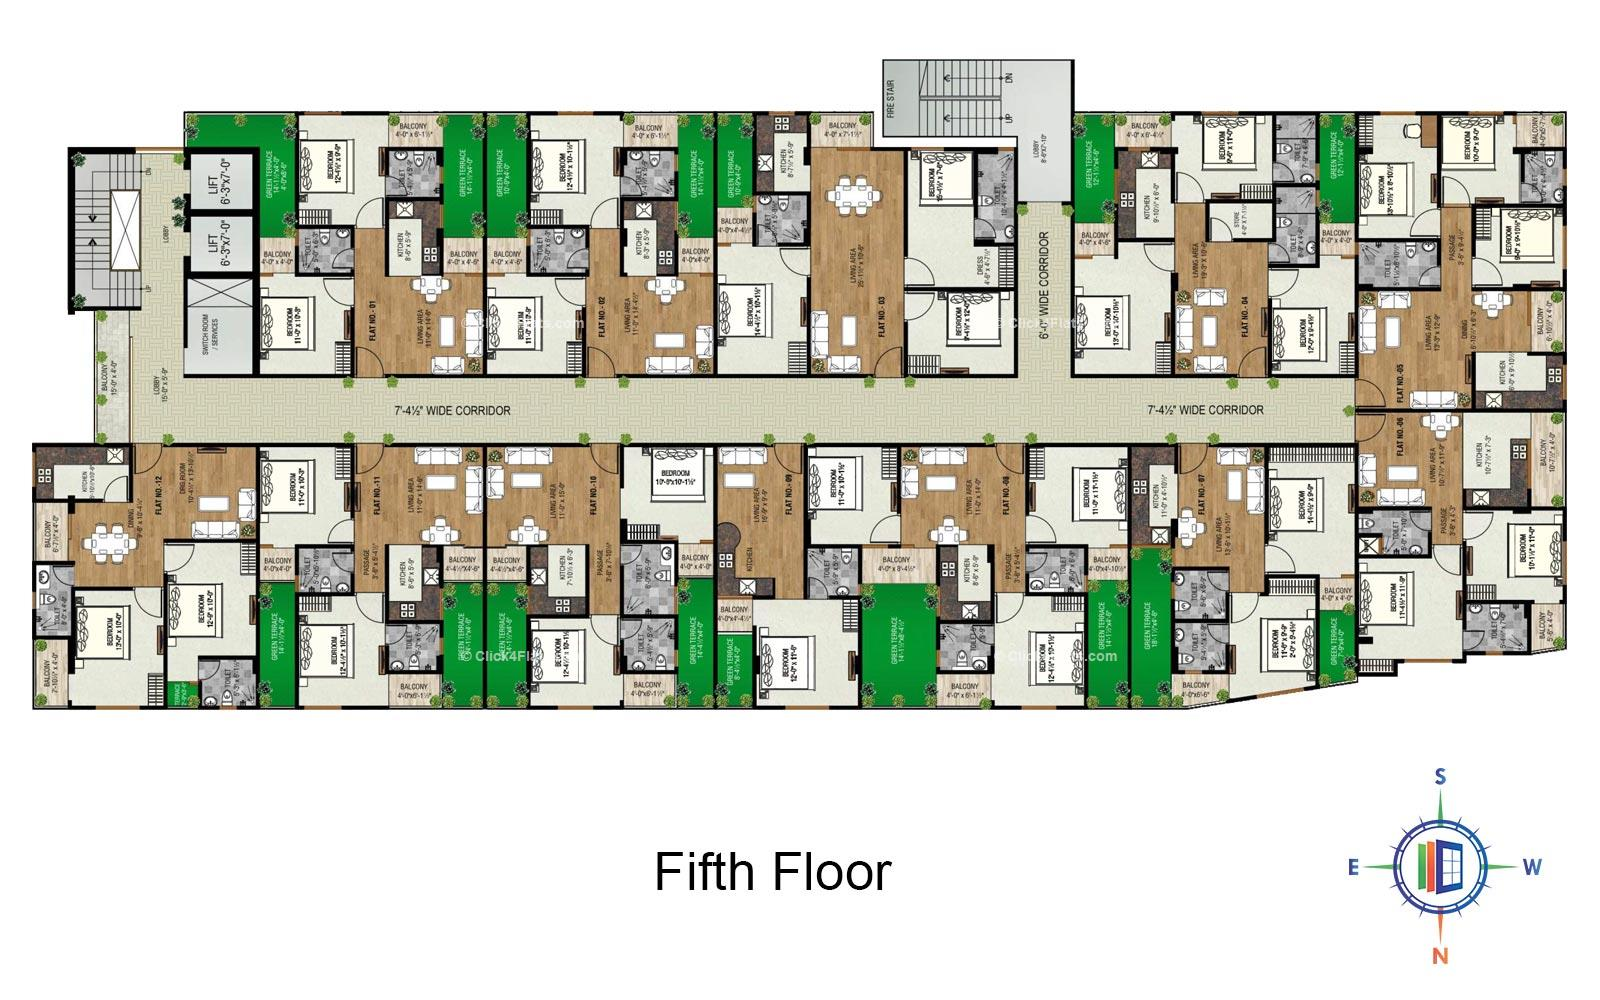 Golden Leaf Fifth Floor Plan